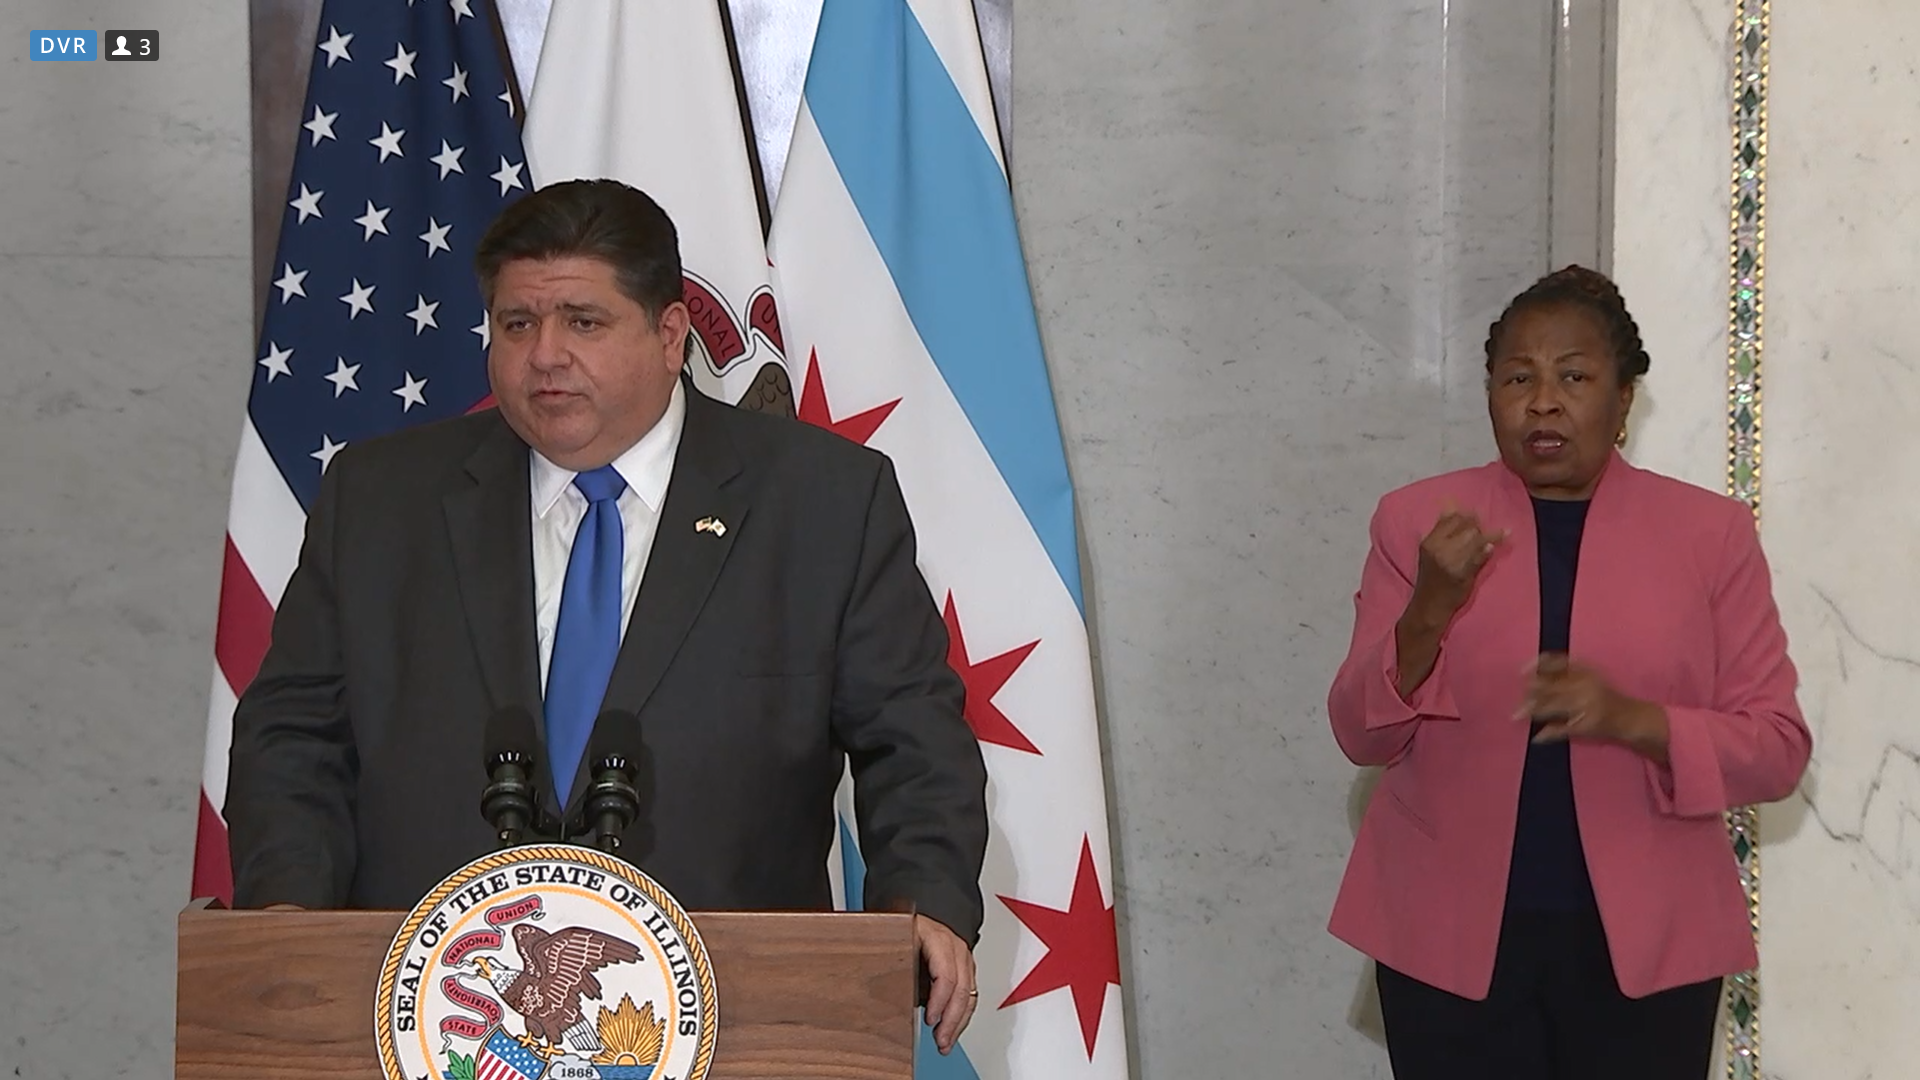 Pritzker denies Lightfoot's plea to rethink closing indoor dining & bar service